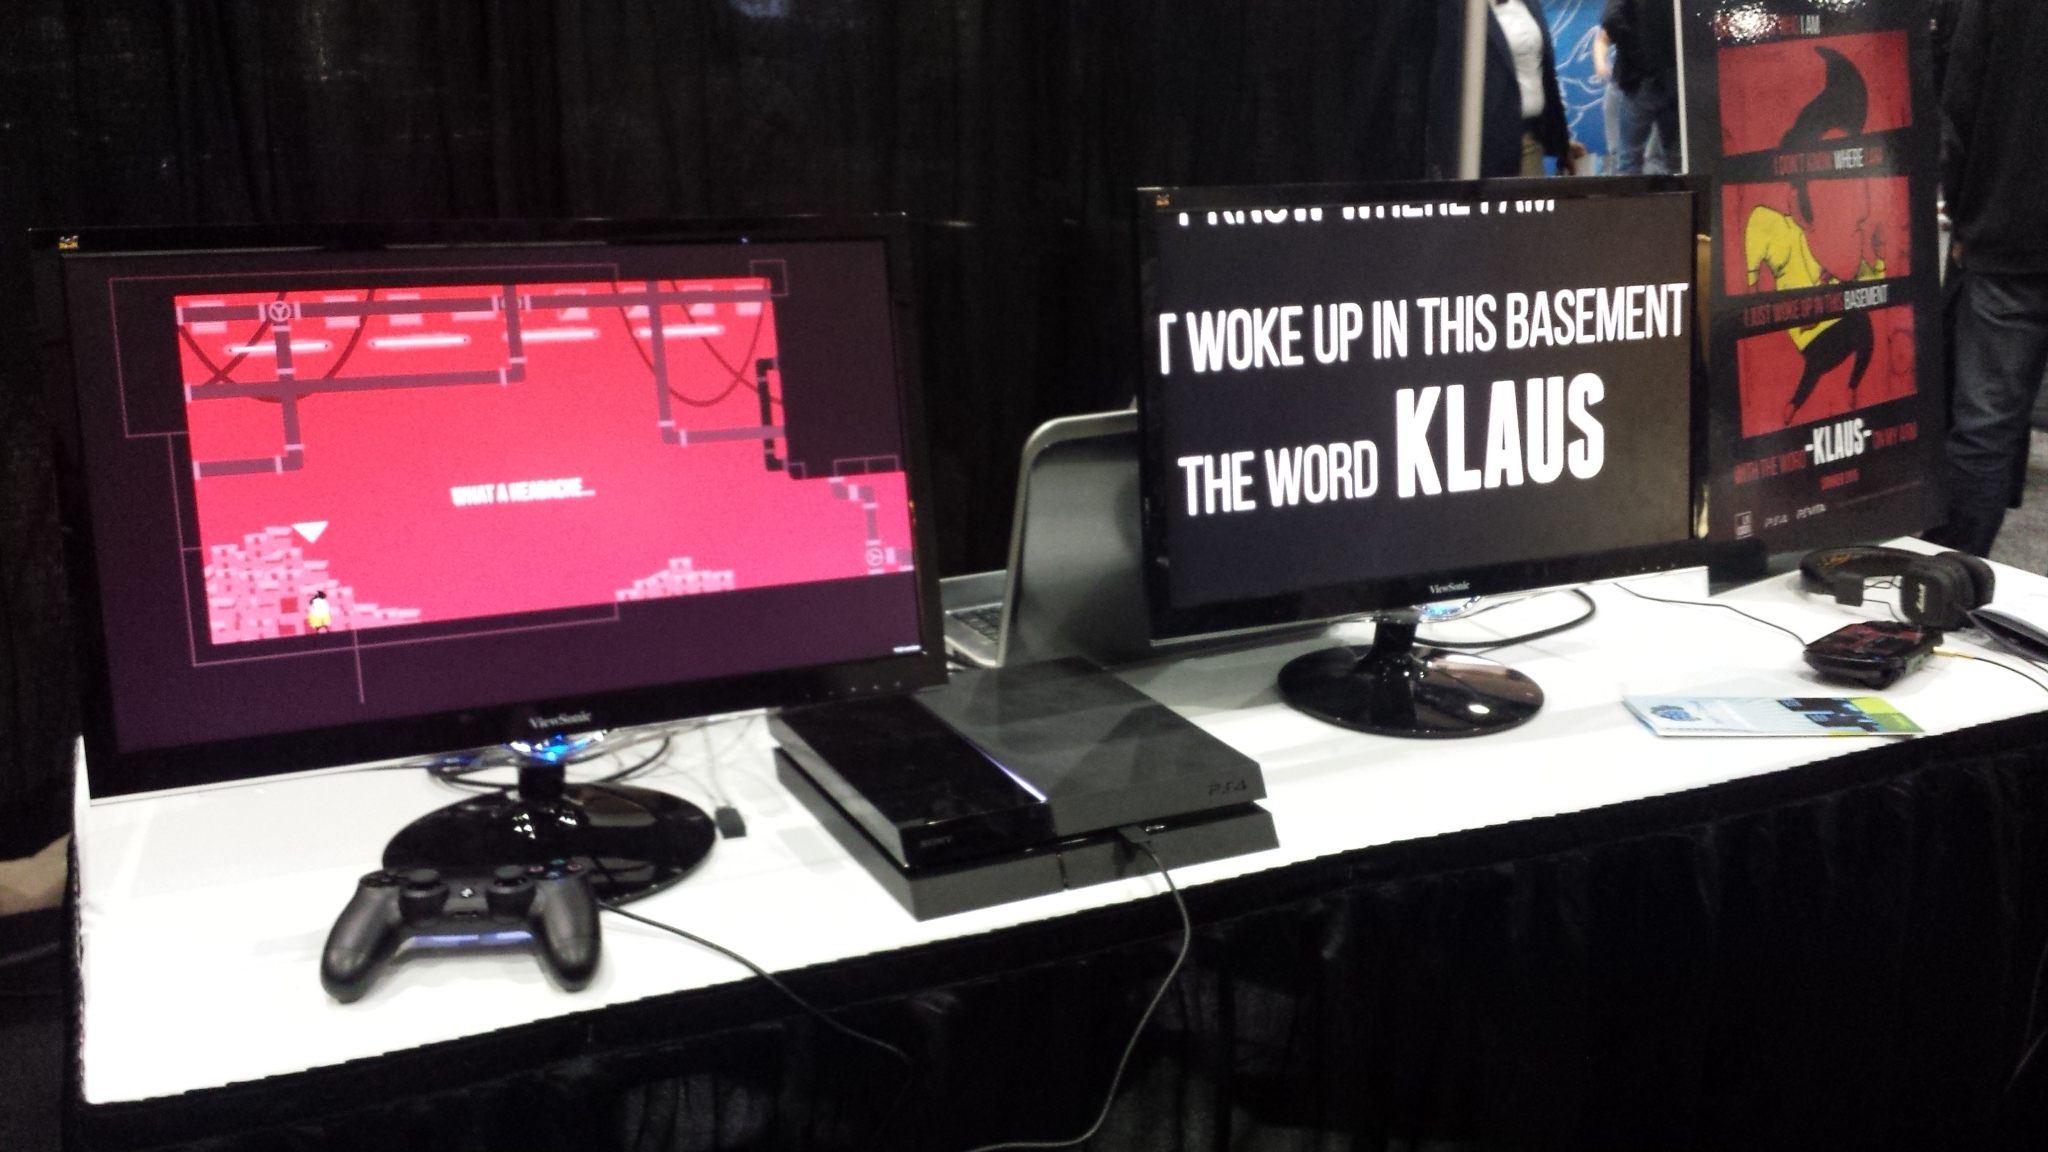 GDC Next 2014: Hands-on with Klaus, a twisted new platformer headed to PS Vita